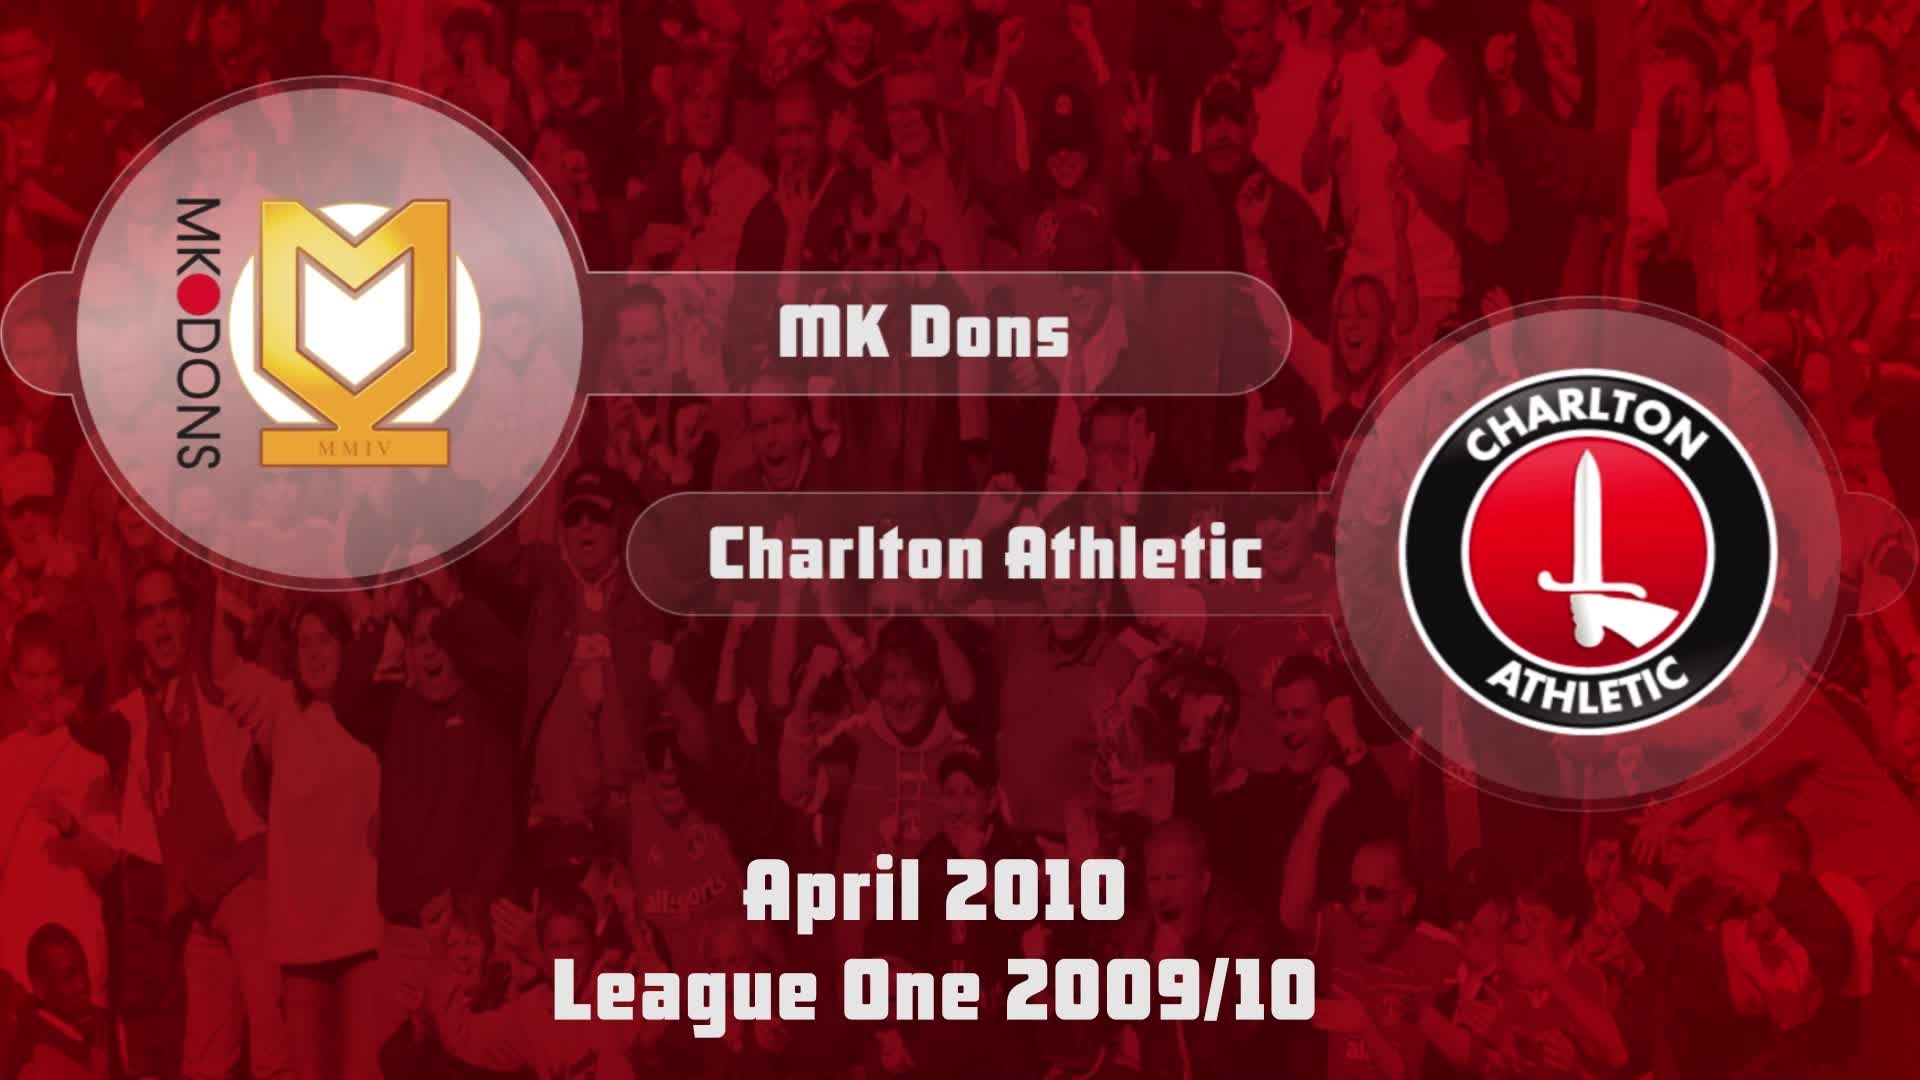 43 HIGHLIGHTS | MK Dons 0 Charlton 1 (April 2010)